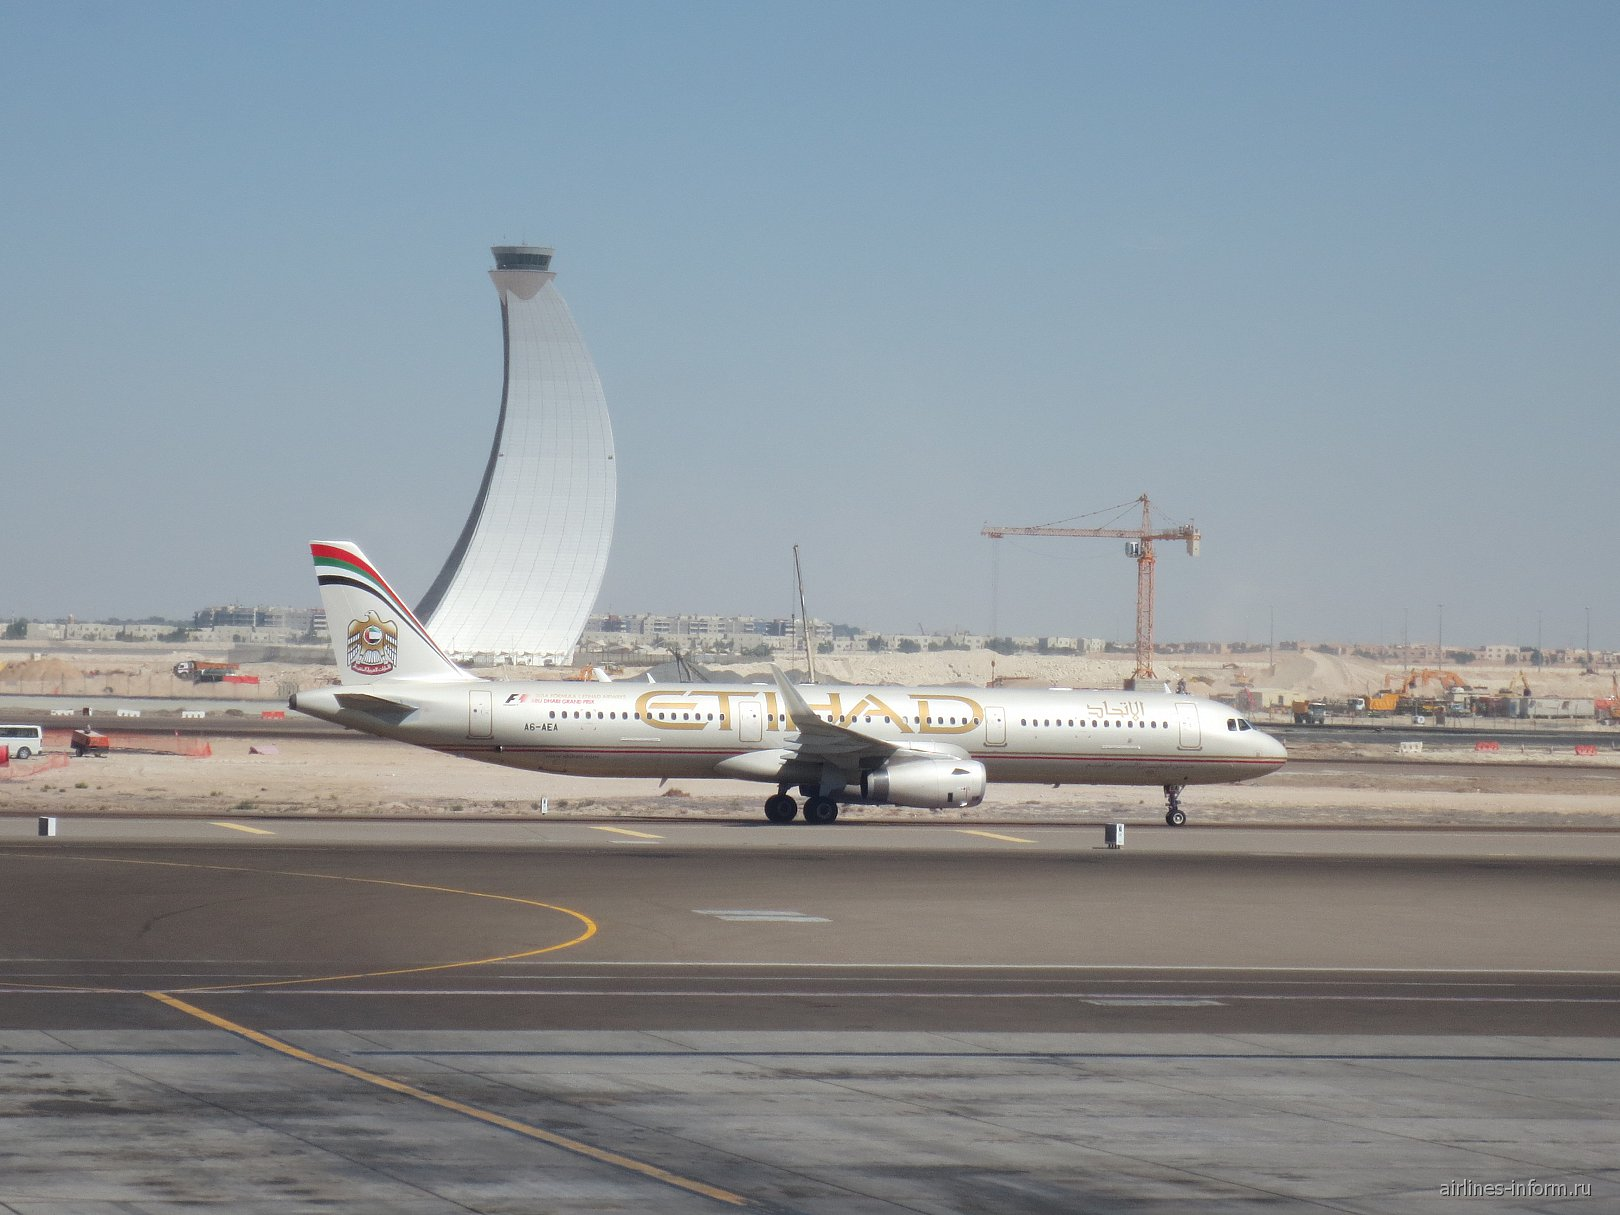 Airbus A321 авиакомпании Etihad Airways в аэропорту Абу-Даби